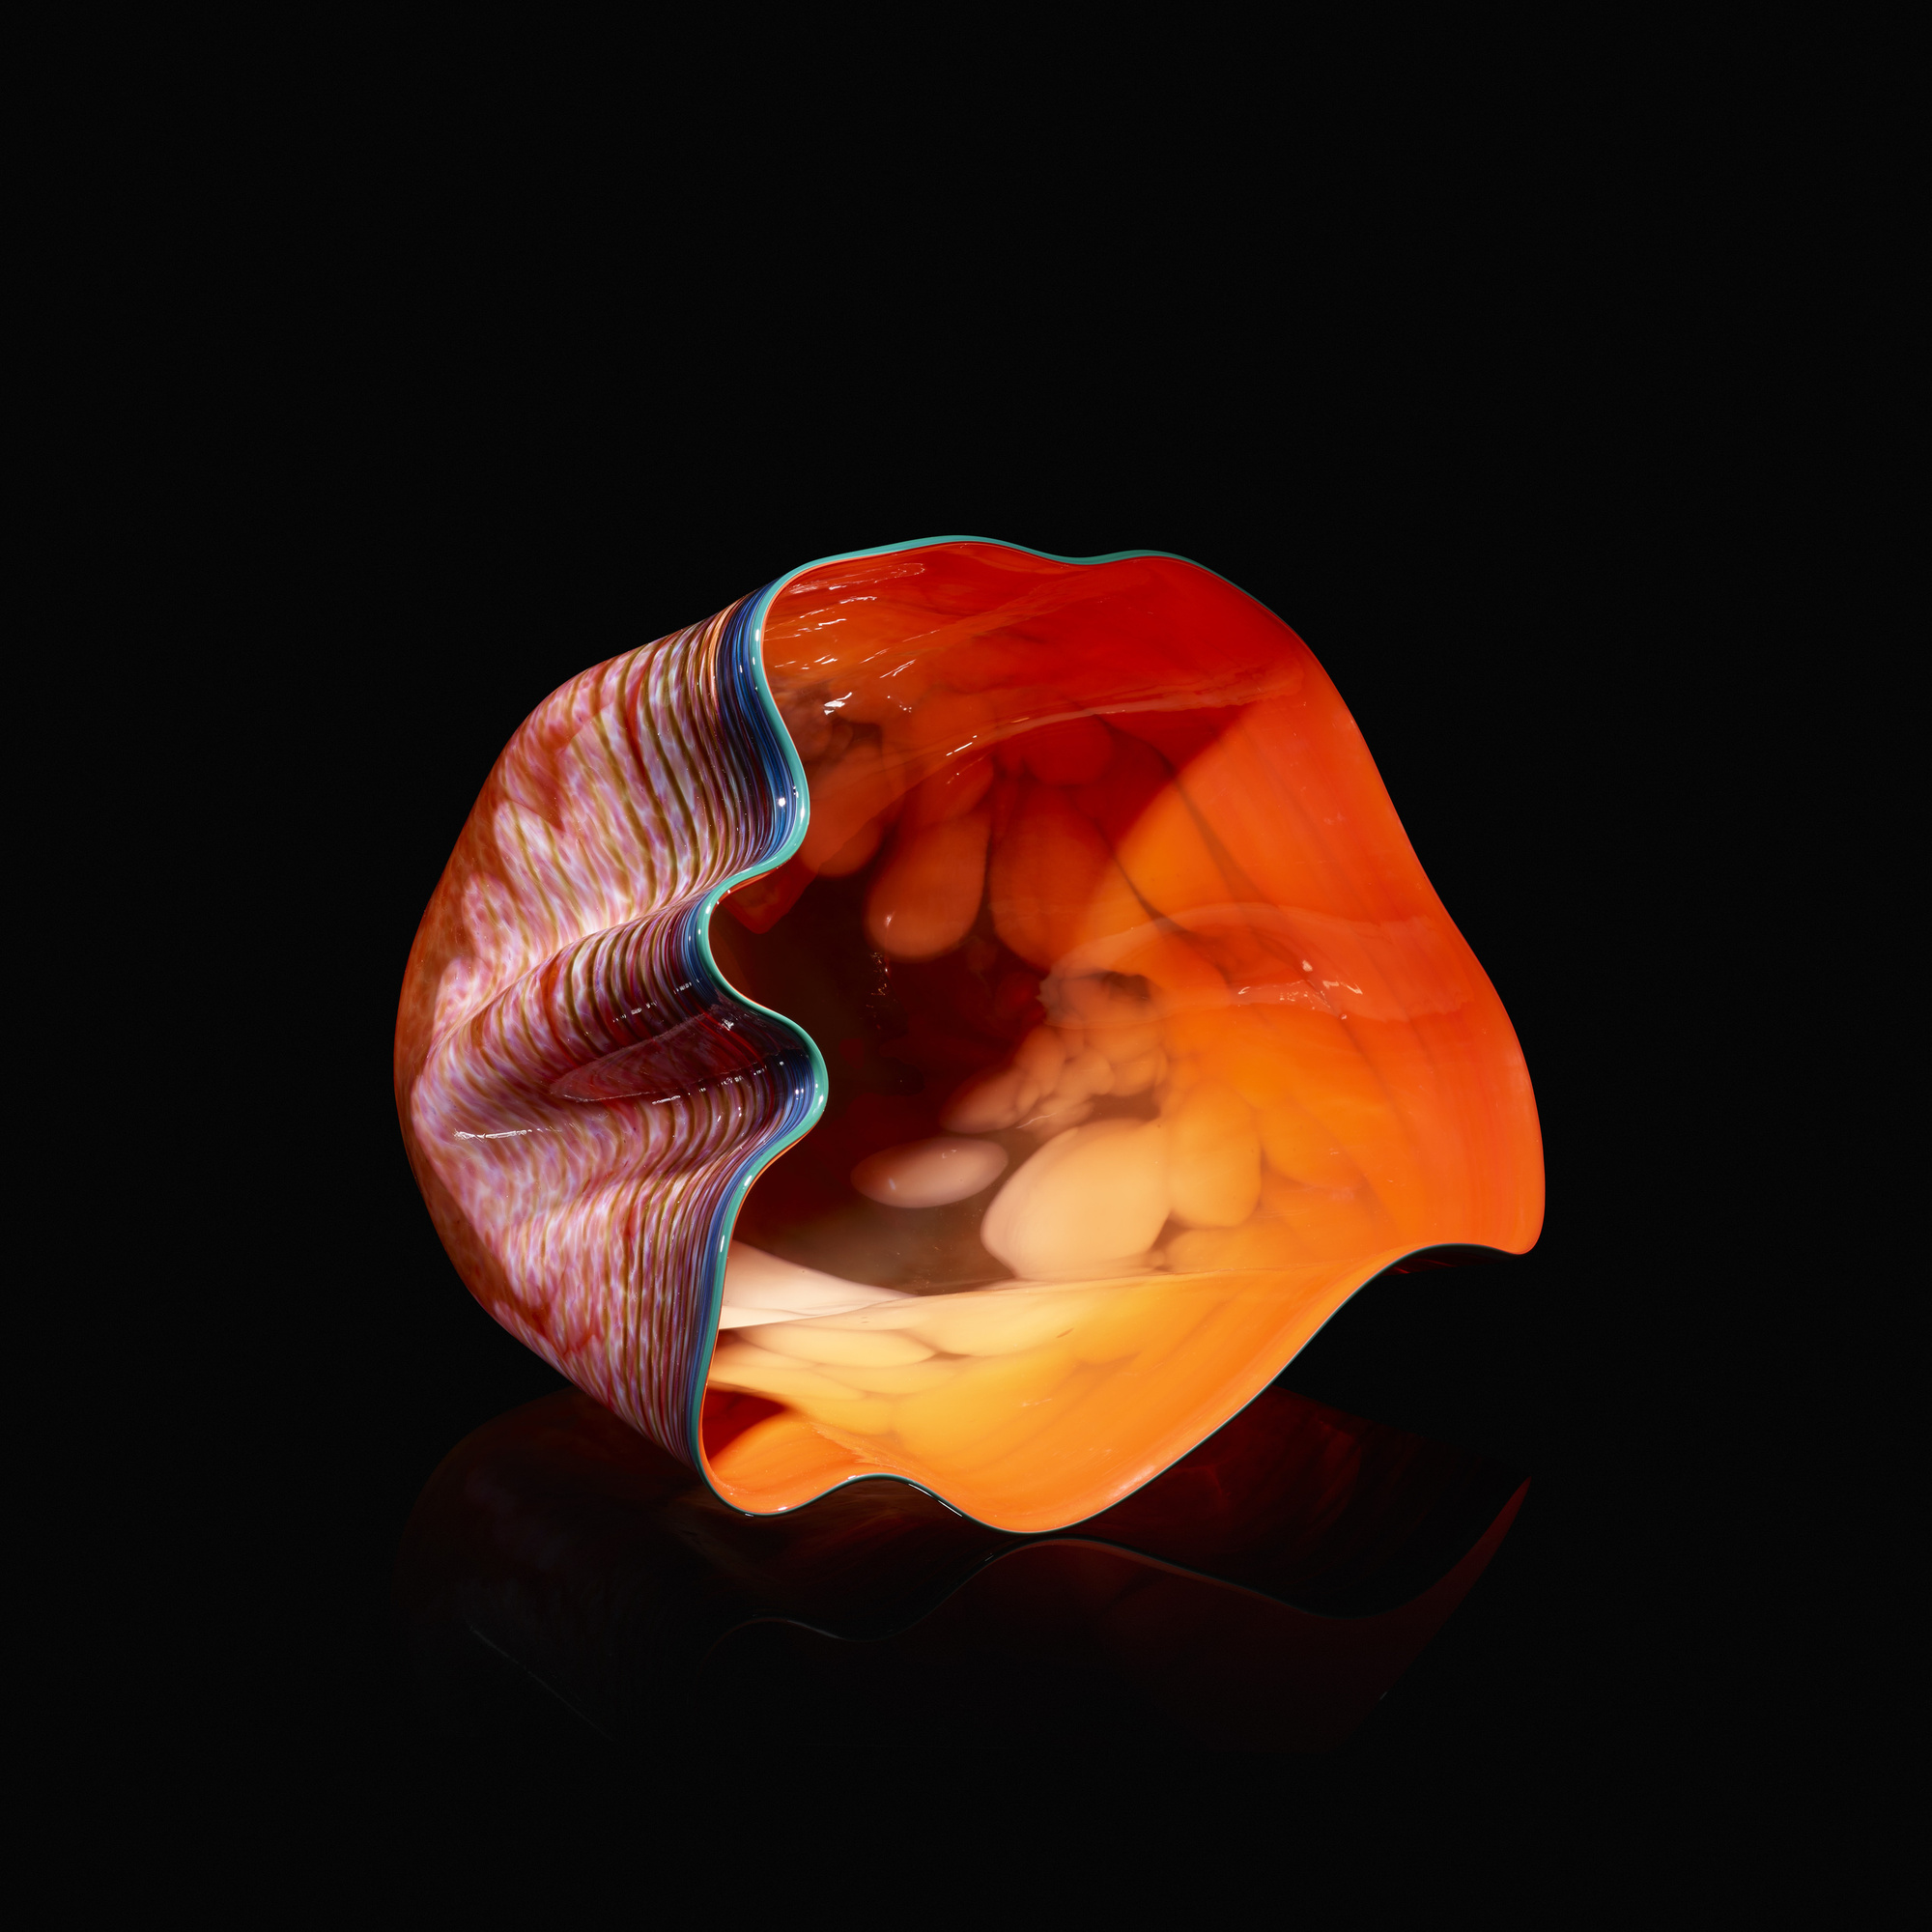 103: Dale Chihuly / Cadmium Red Light Macchia with Emerald Lip Wrap (1 of 4)